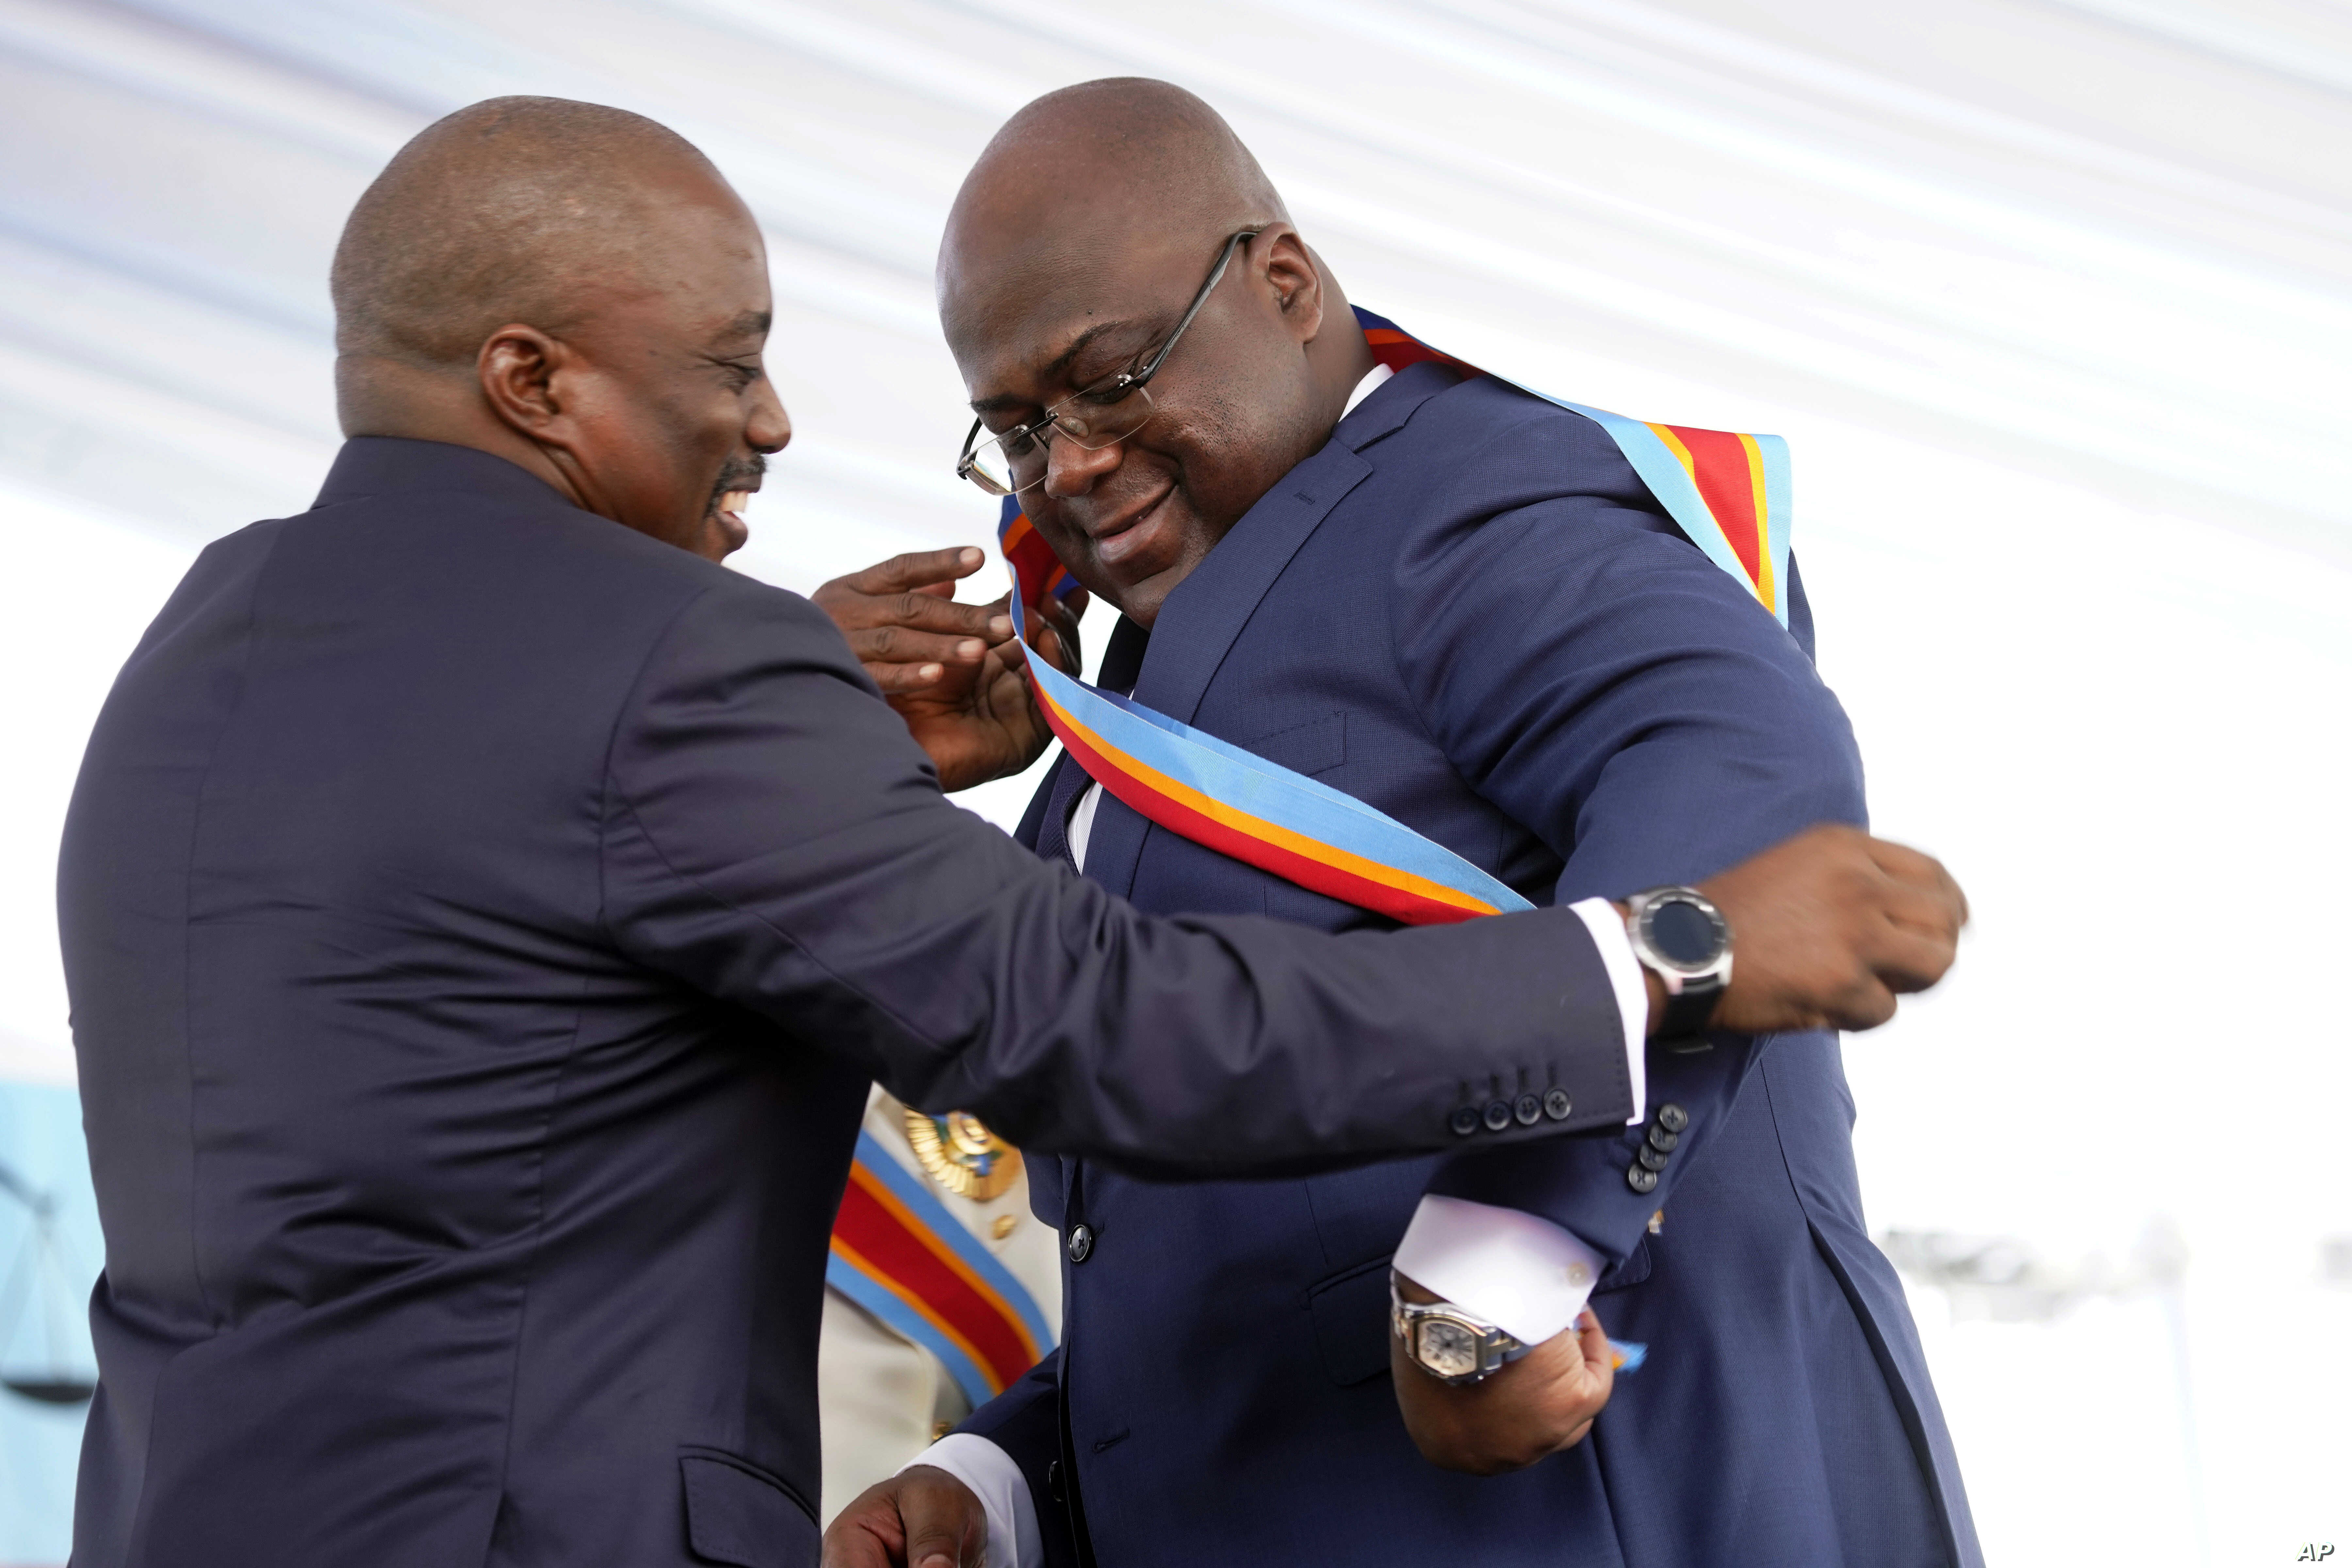 Congolese President Felix Tshisekedi, right, receives the presidential sash from outgoing president Joseph Kabila after being sworn in in Kinshasa, Democratic Republic of the Congo, Thursday Jan. 24, 2019.